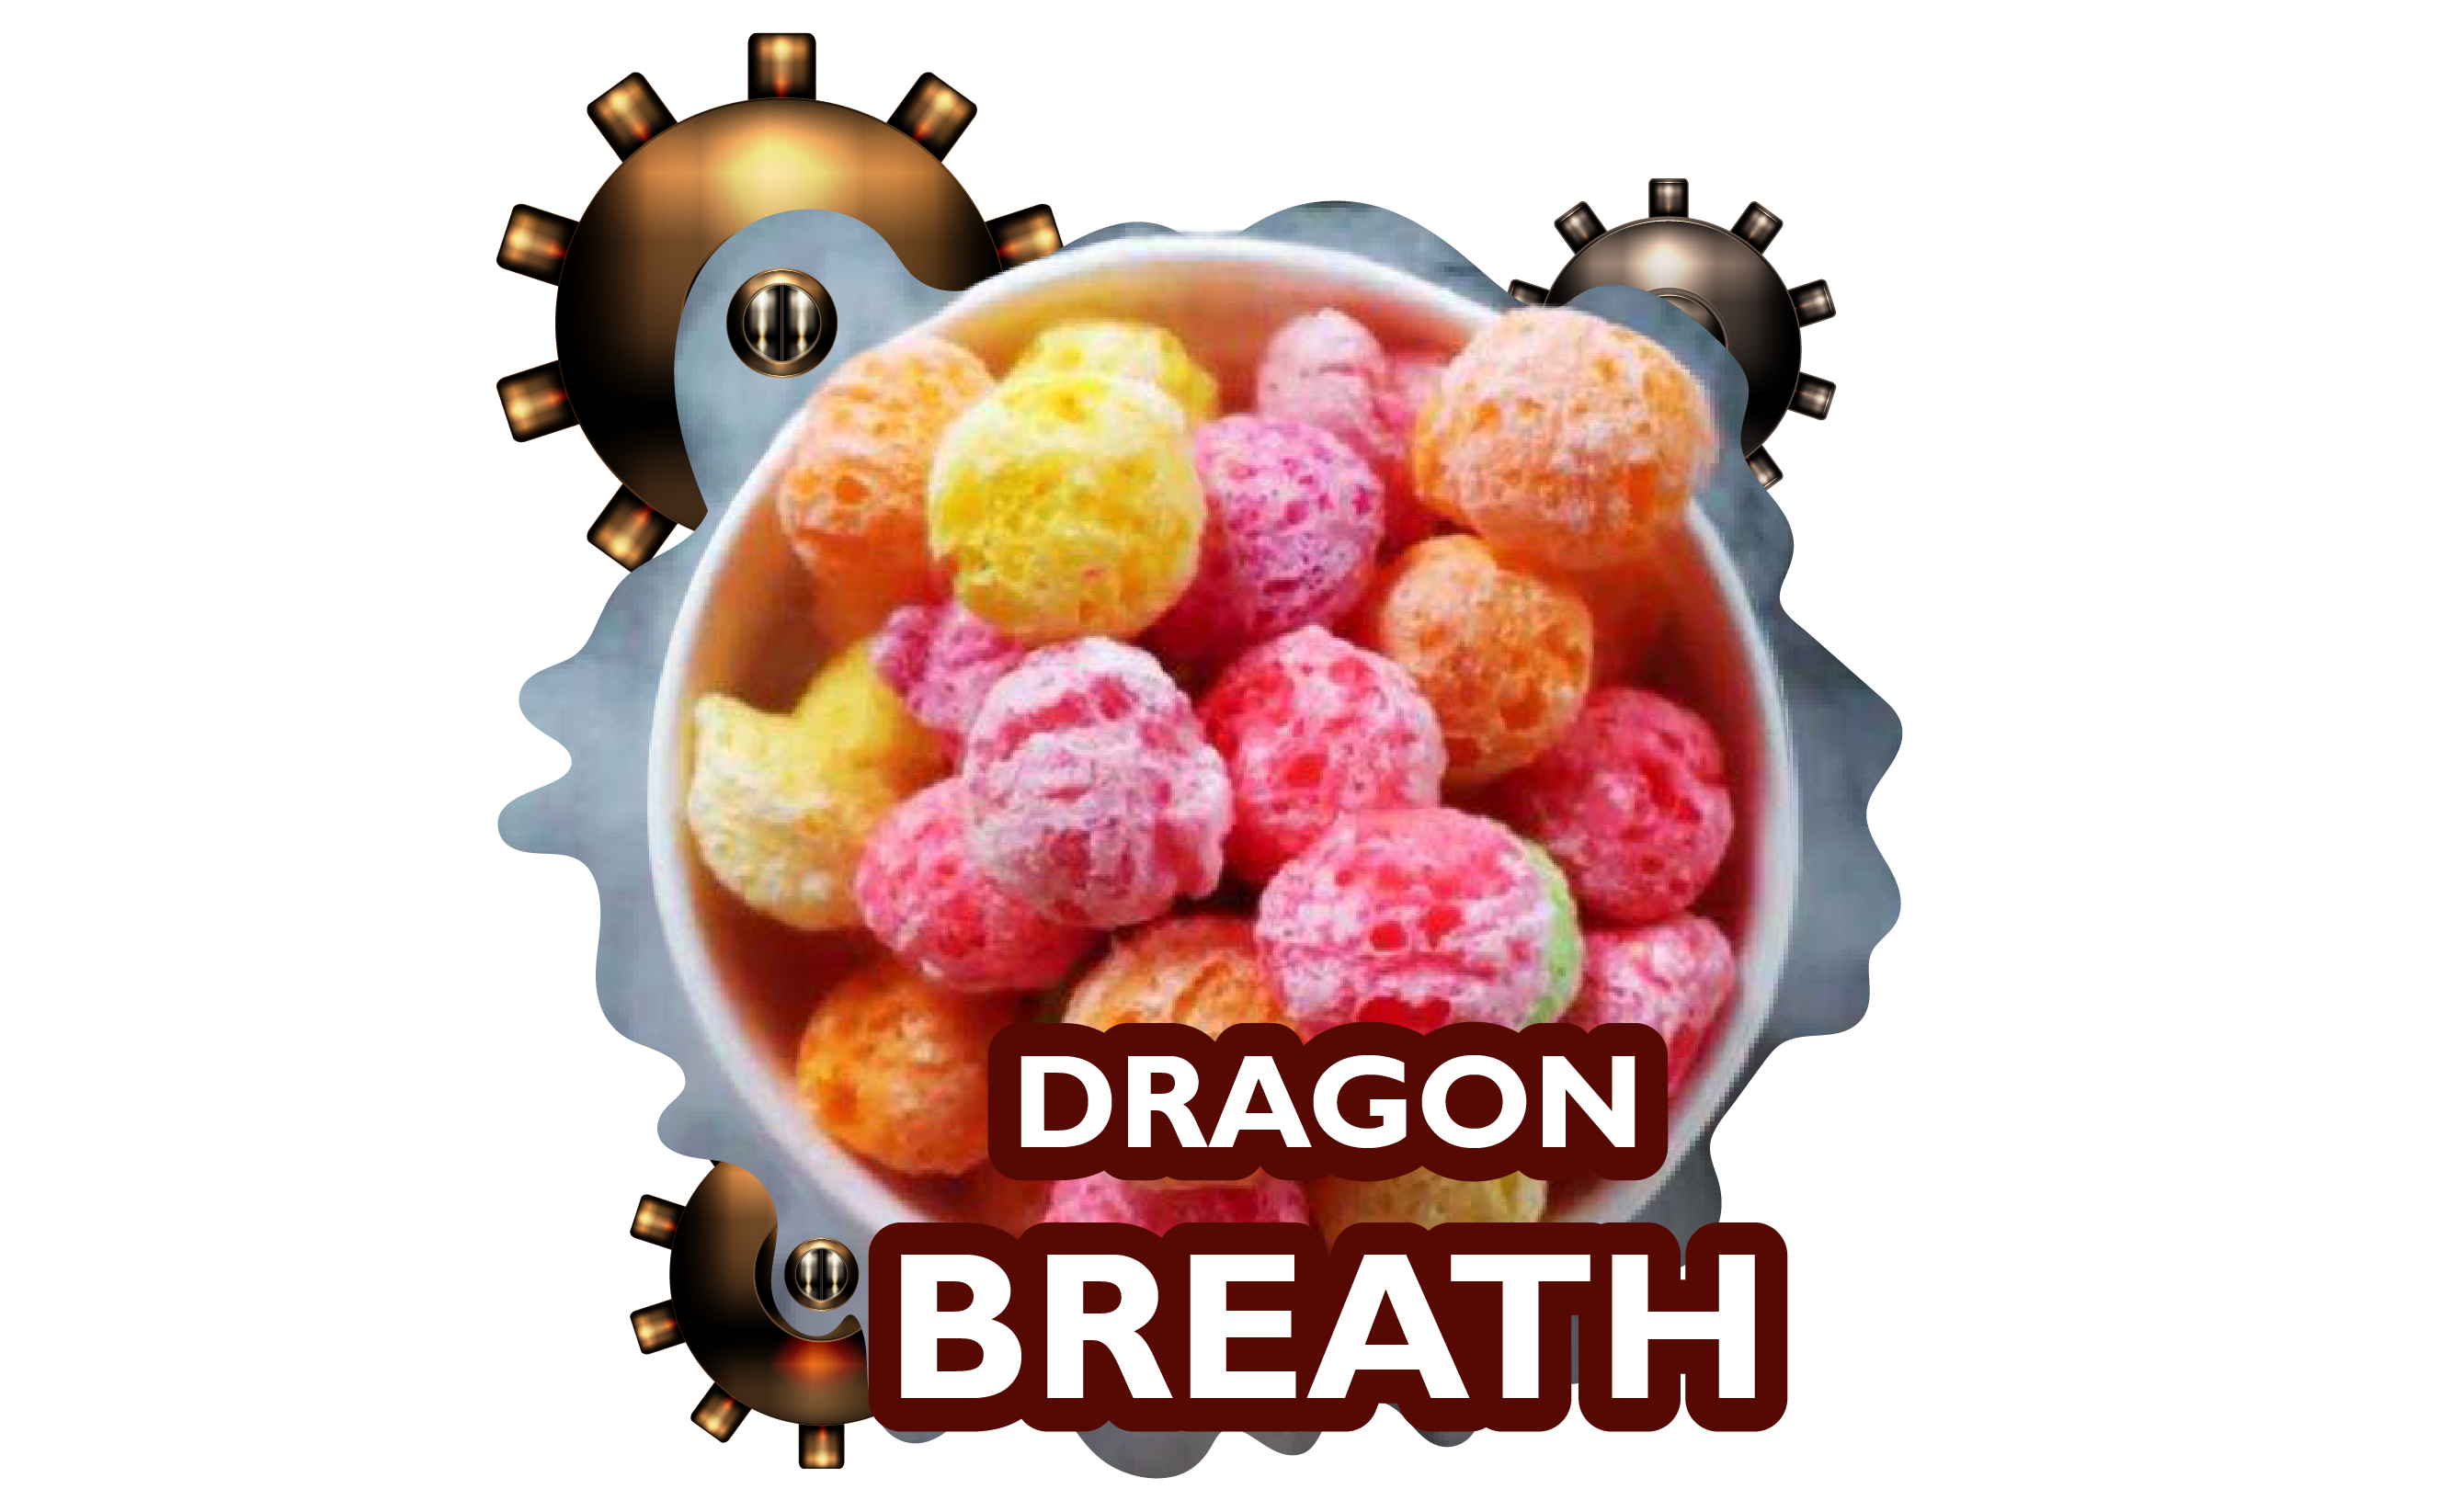 Dragons Breath Oh-So Wonderful!